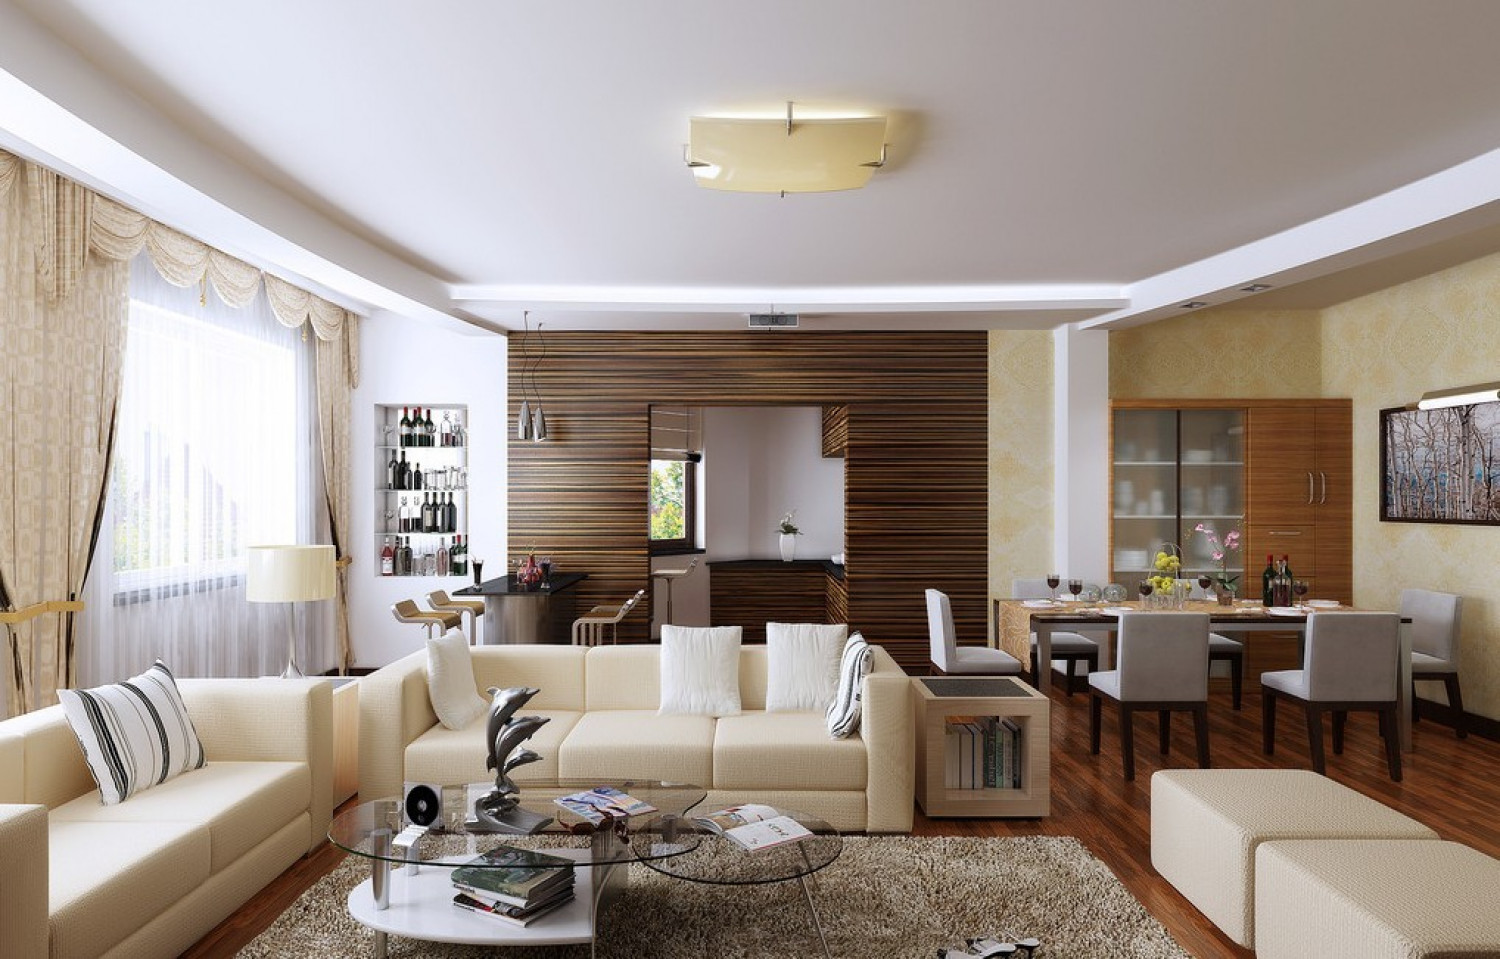 Sobha City Gurgaon Luxury Residential apartments for sale in Gurgaon Infographic